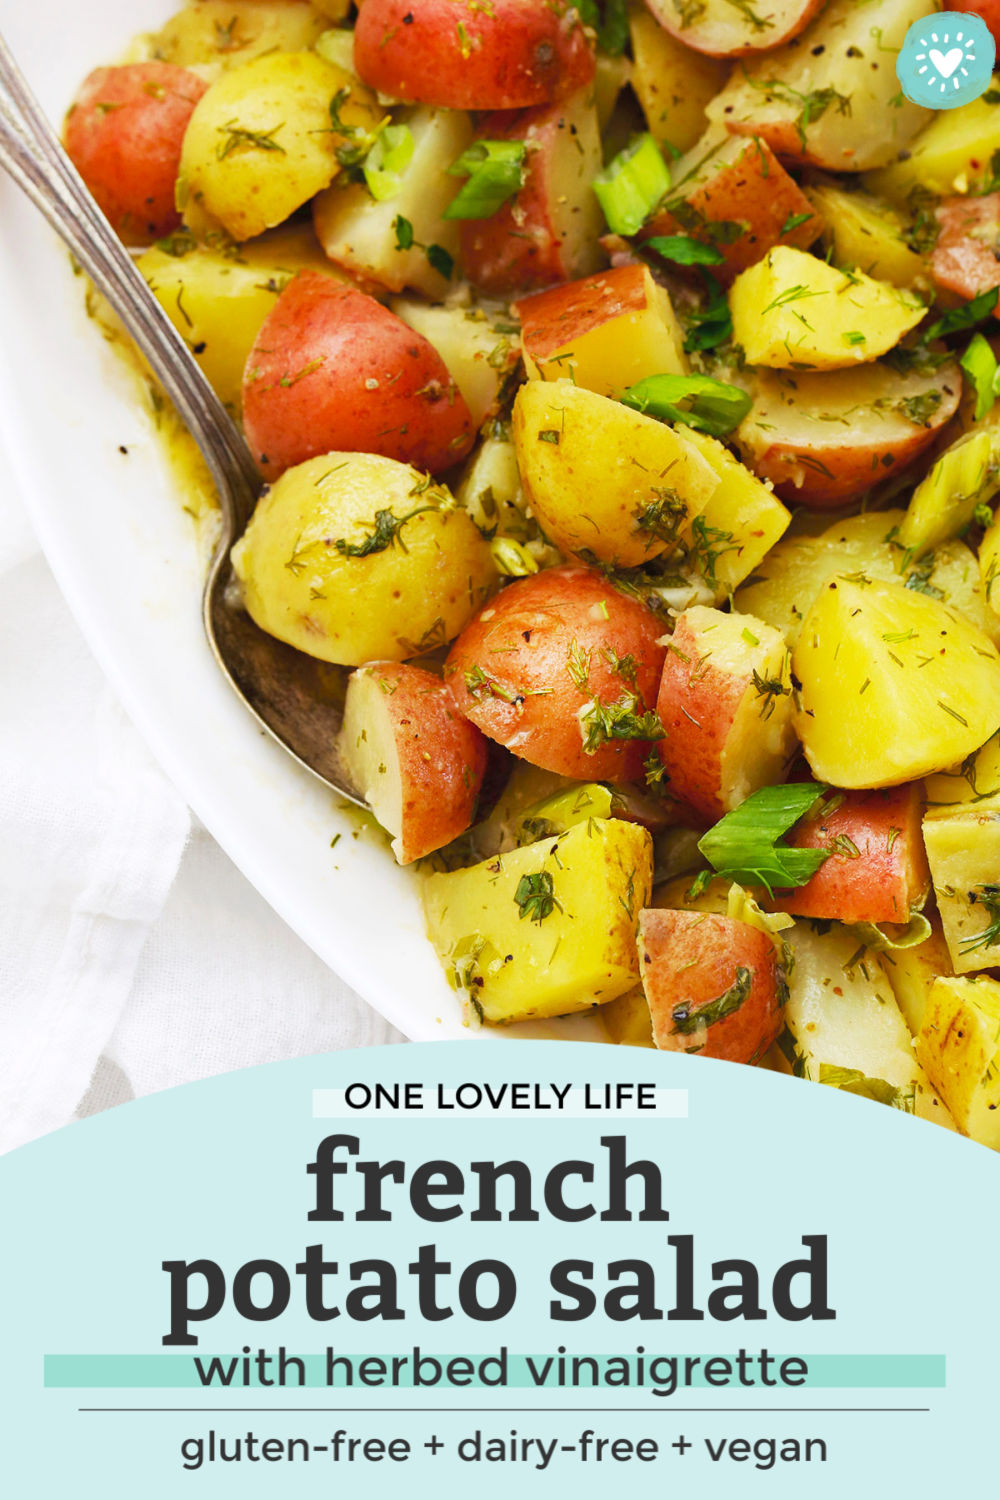 French Potato Salad with Vinaigrette from One Lovely Life